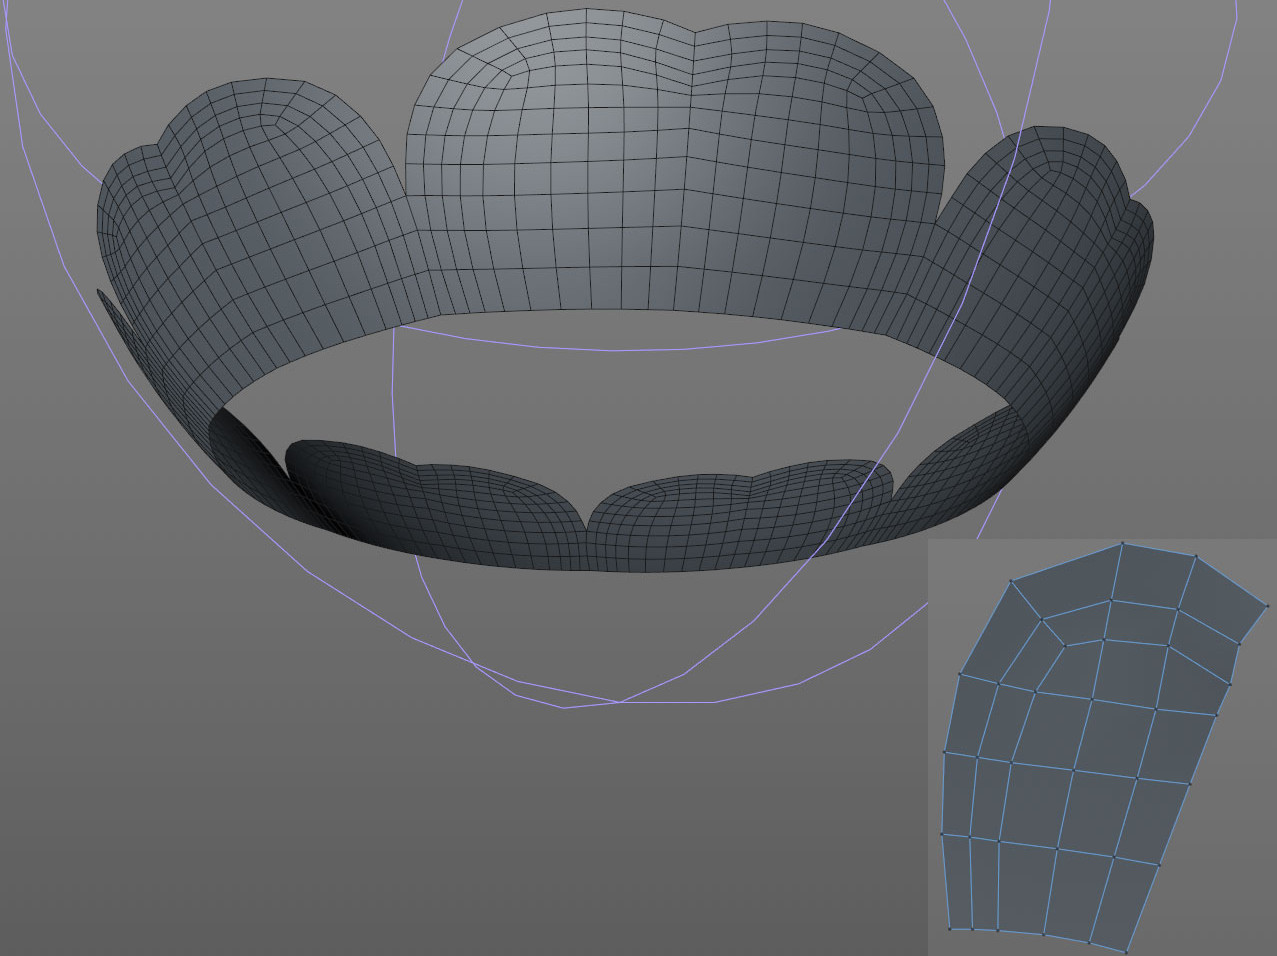 I adjusted the topology by pushing points around to create the rounded tops.